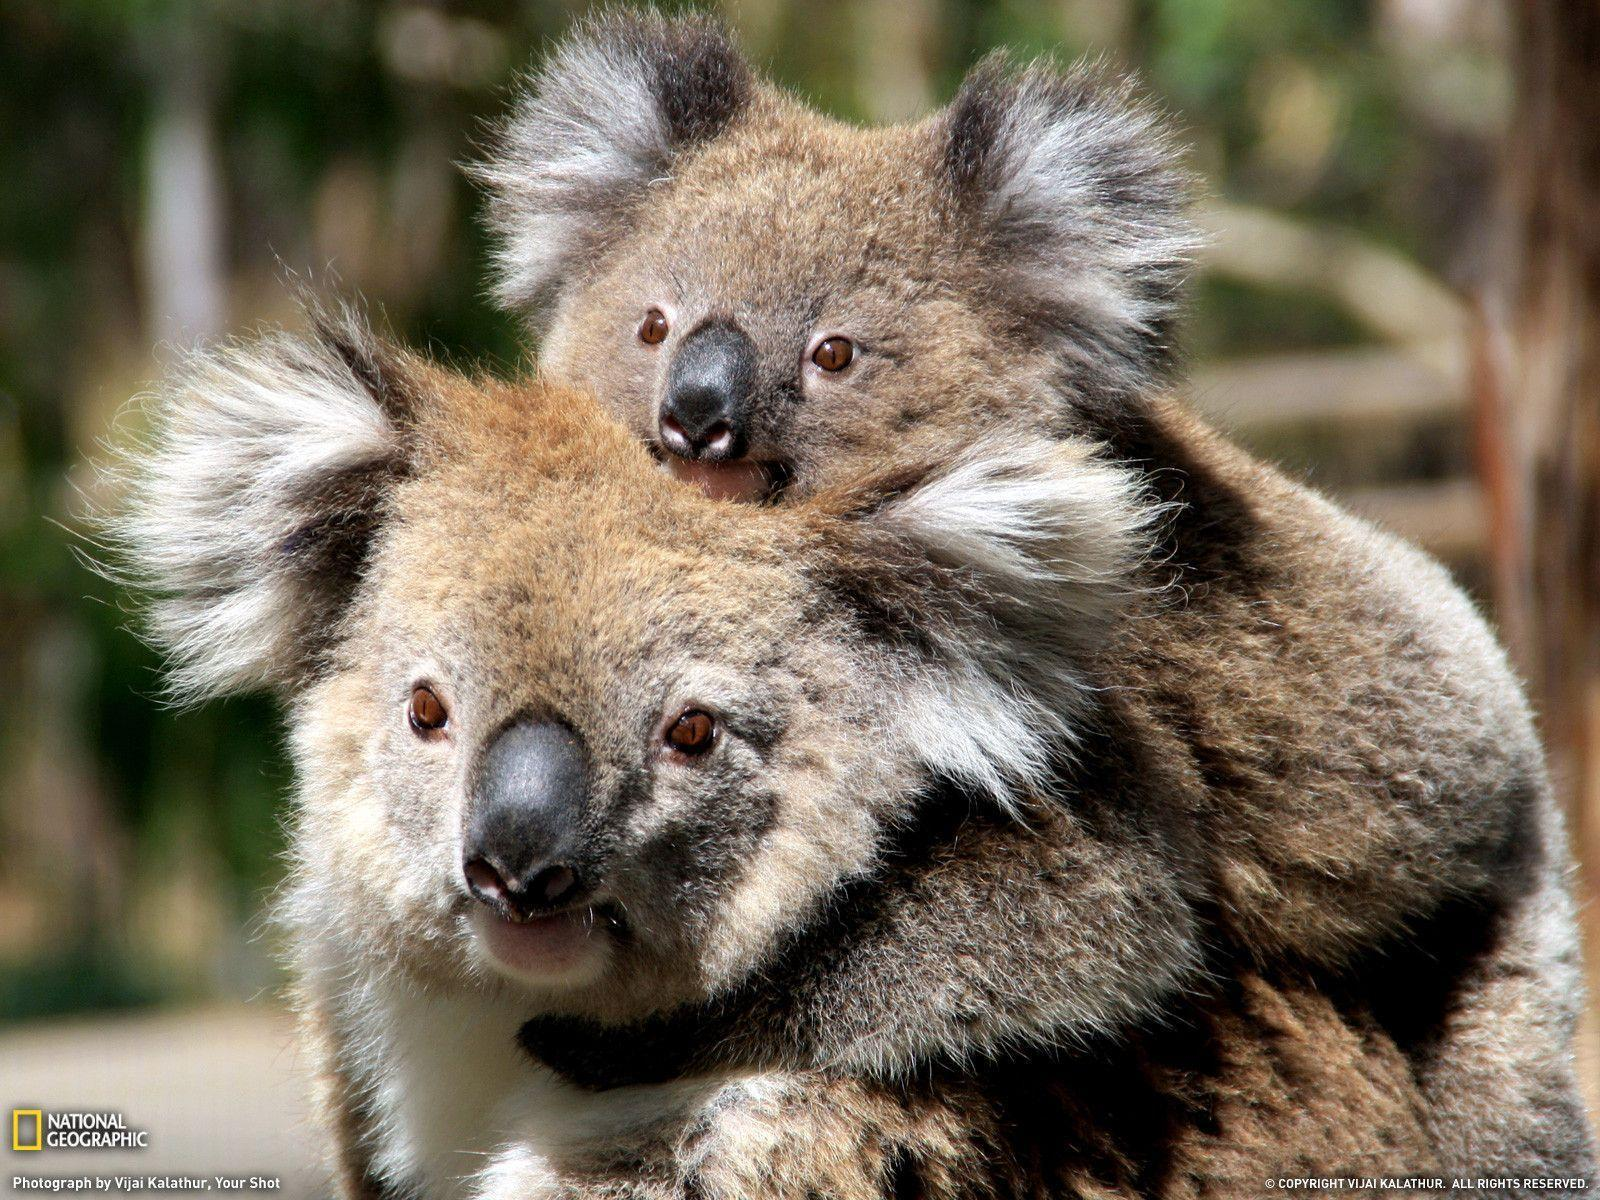 Mother and Baby Koala, Australia